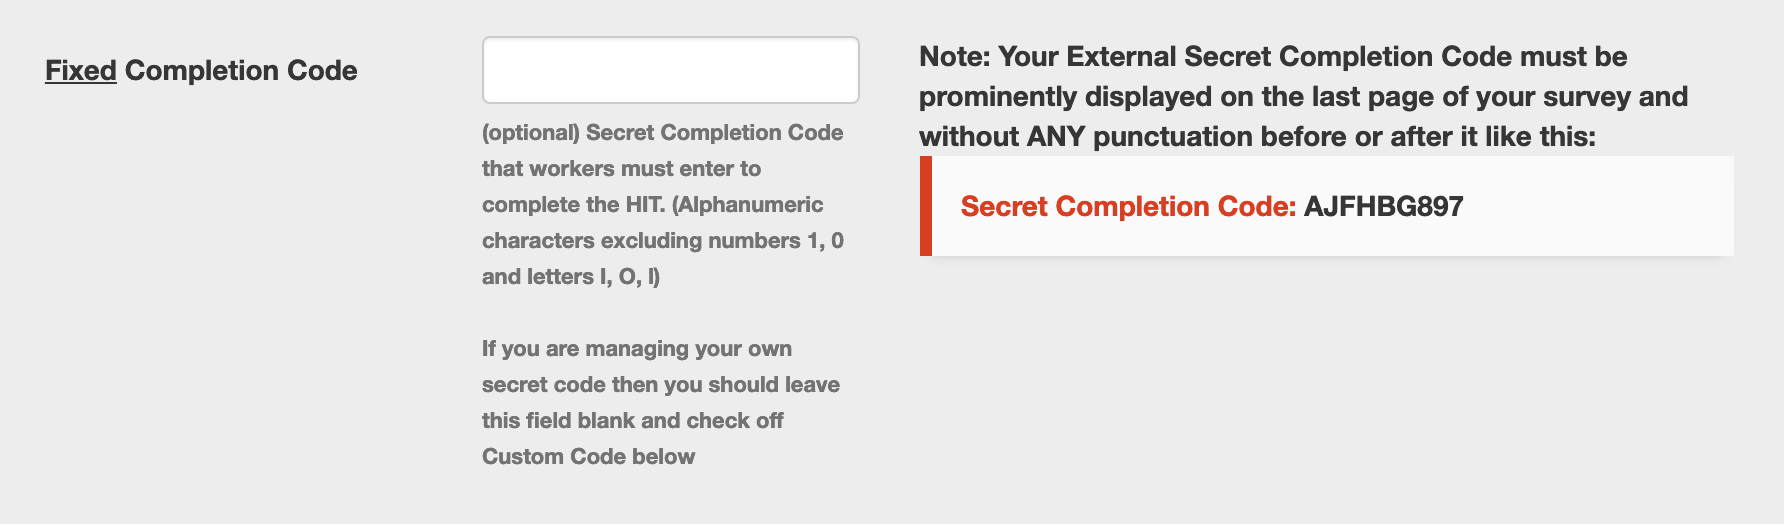 Approval Codes on MTurk: Fixed Completion Code